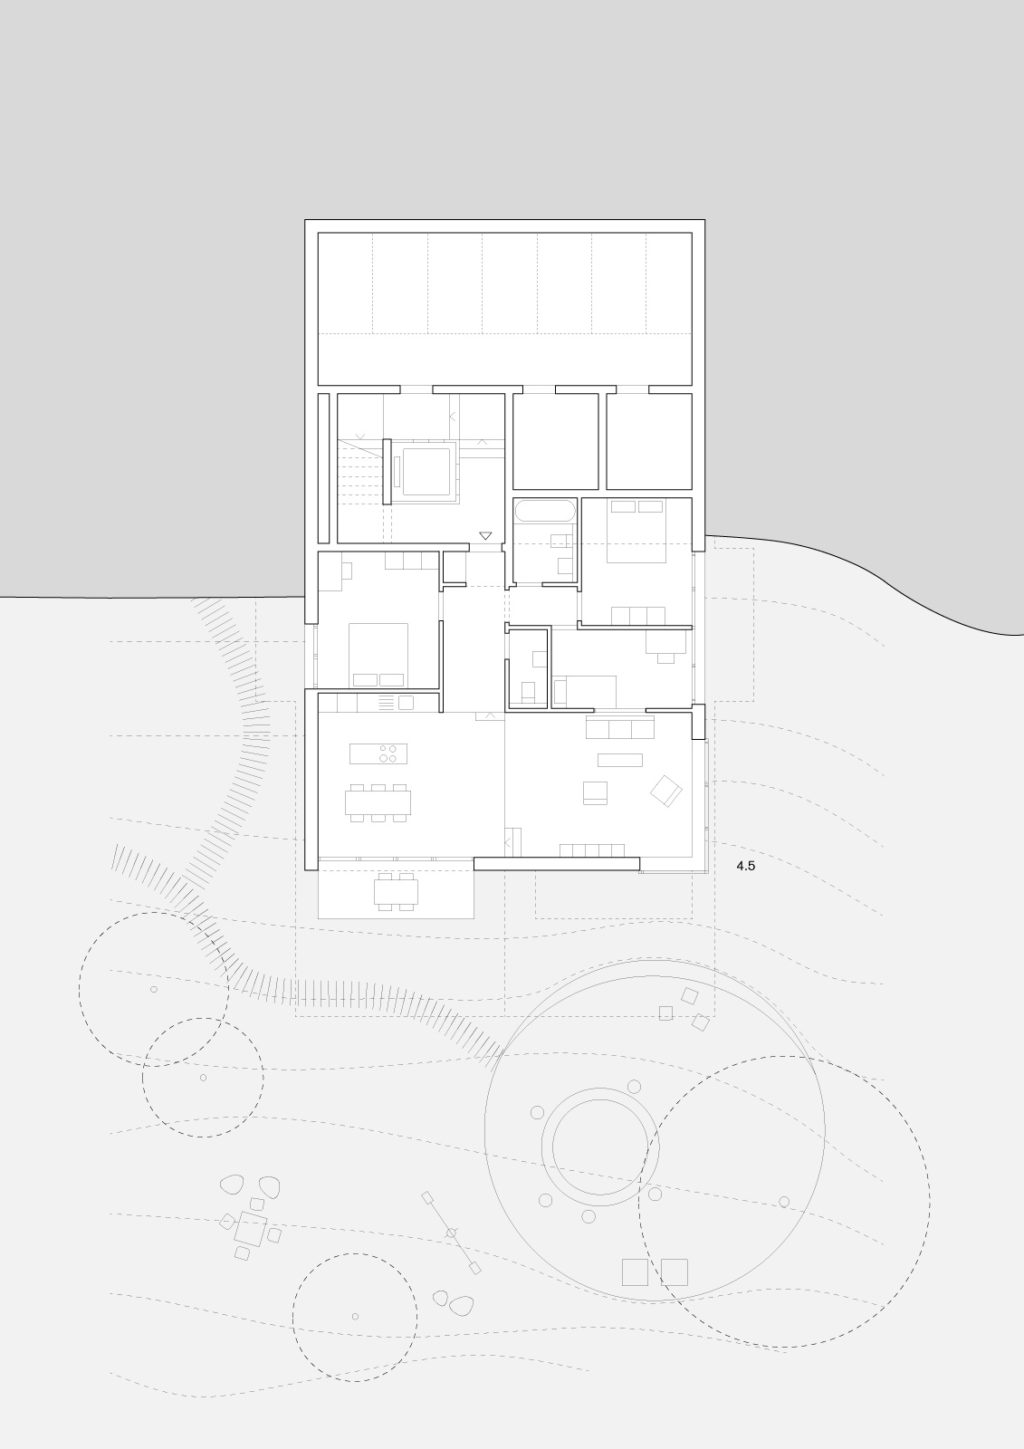 Projects Karamuk Kuo Architects Drawings Plans Autocad Design Drafting Cs 38 Thurgauerstrasse Primary School